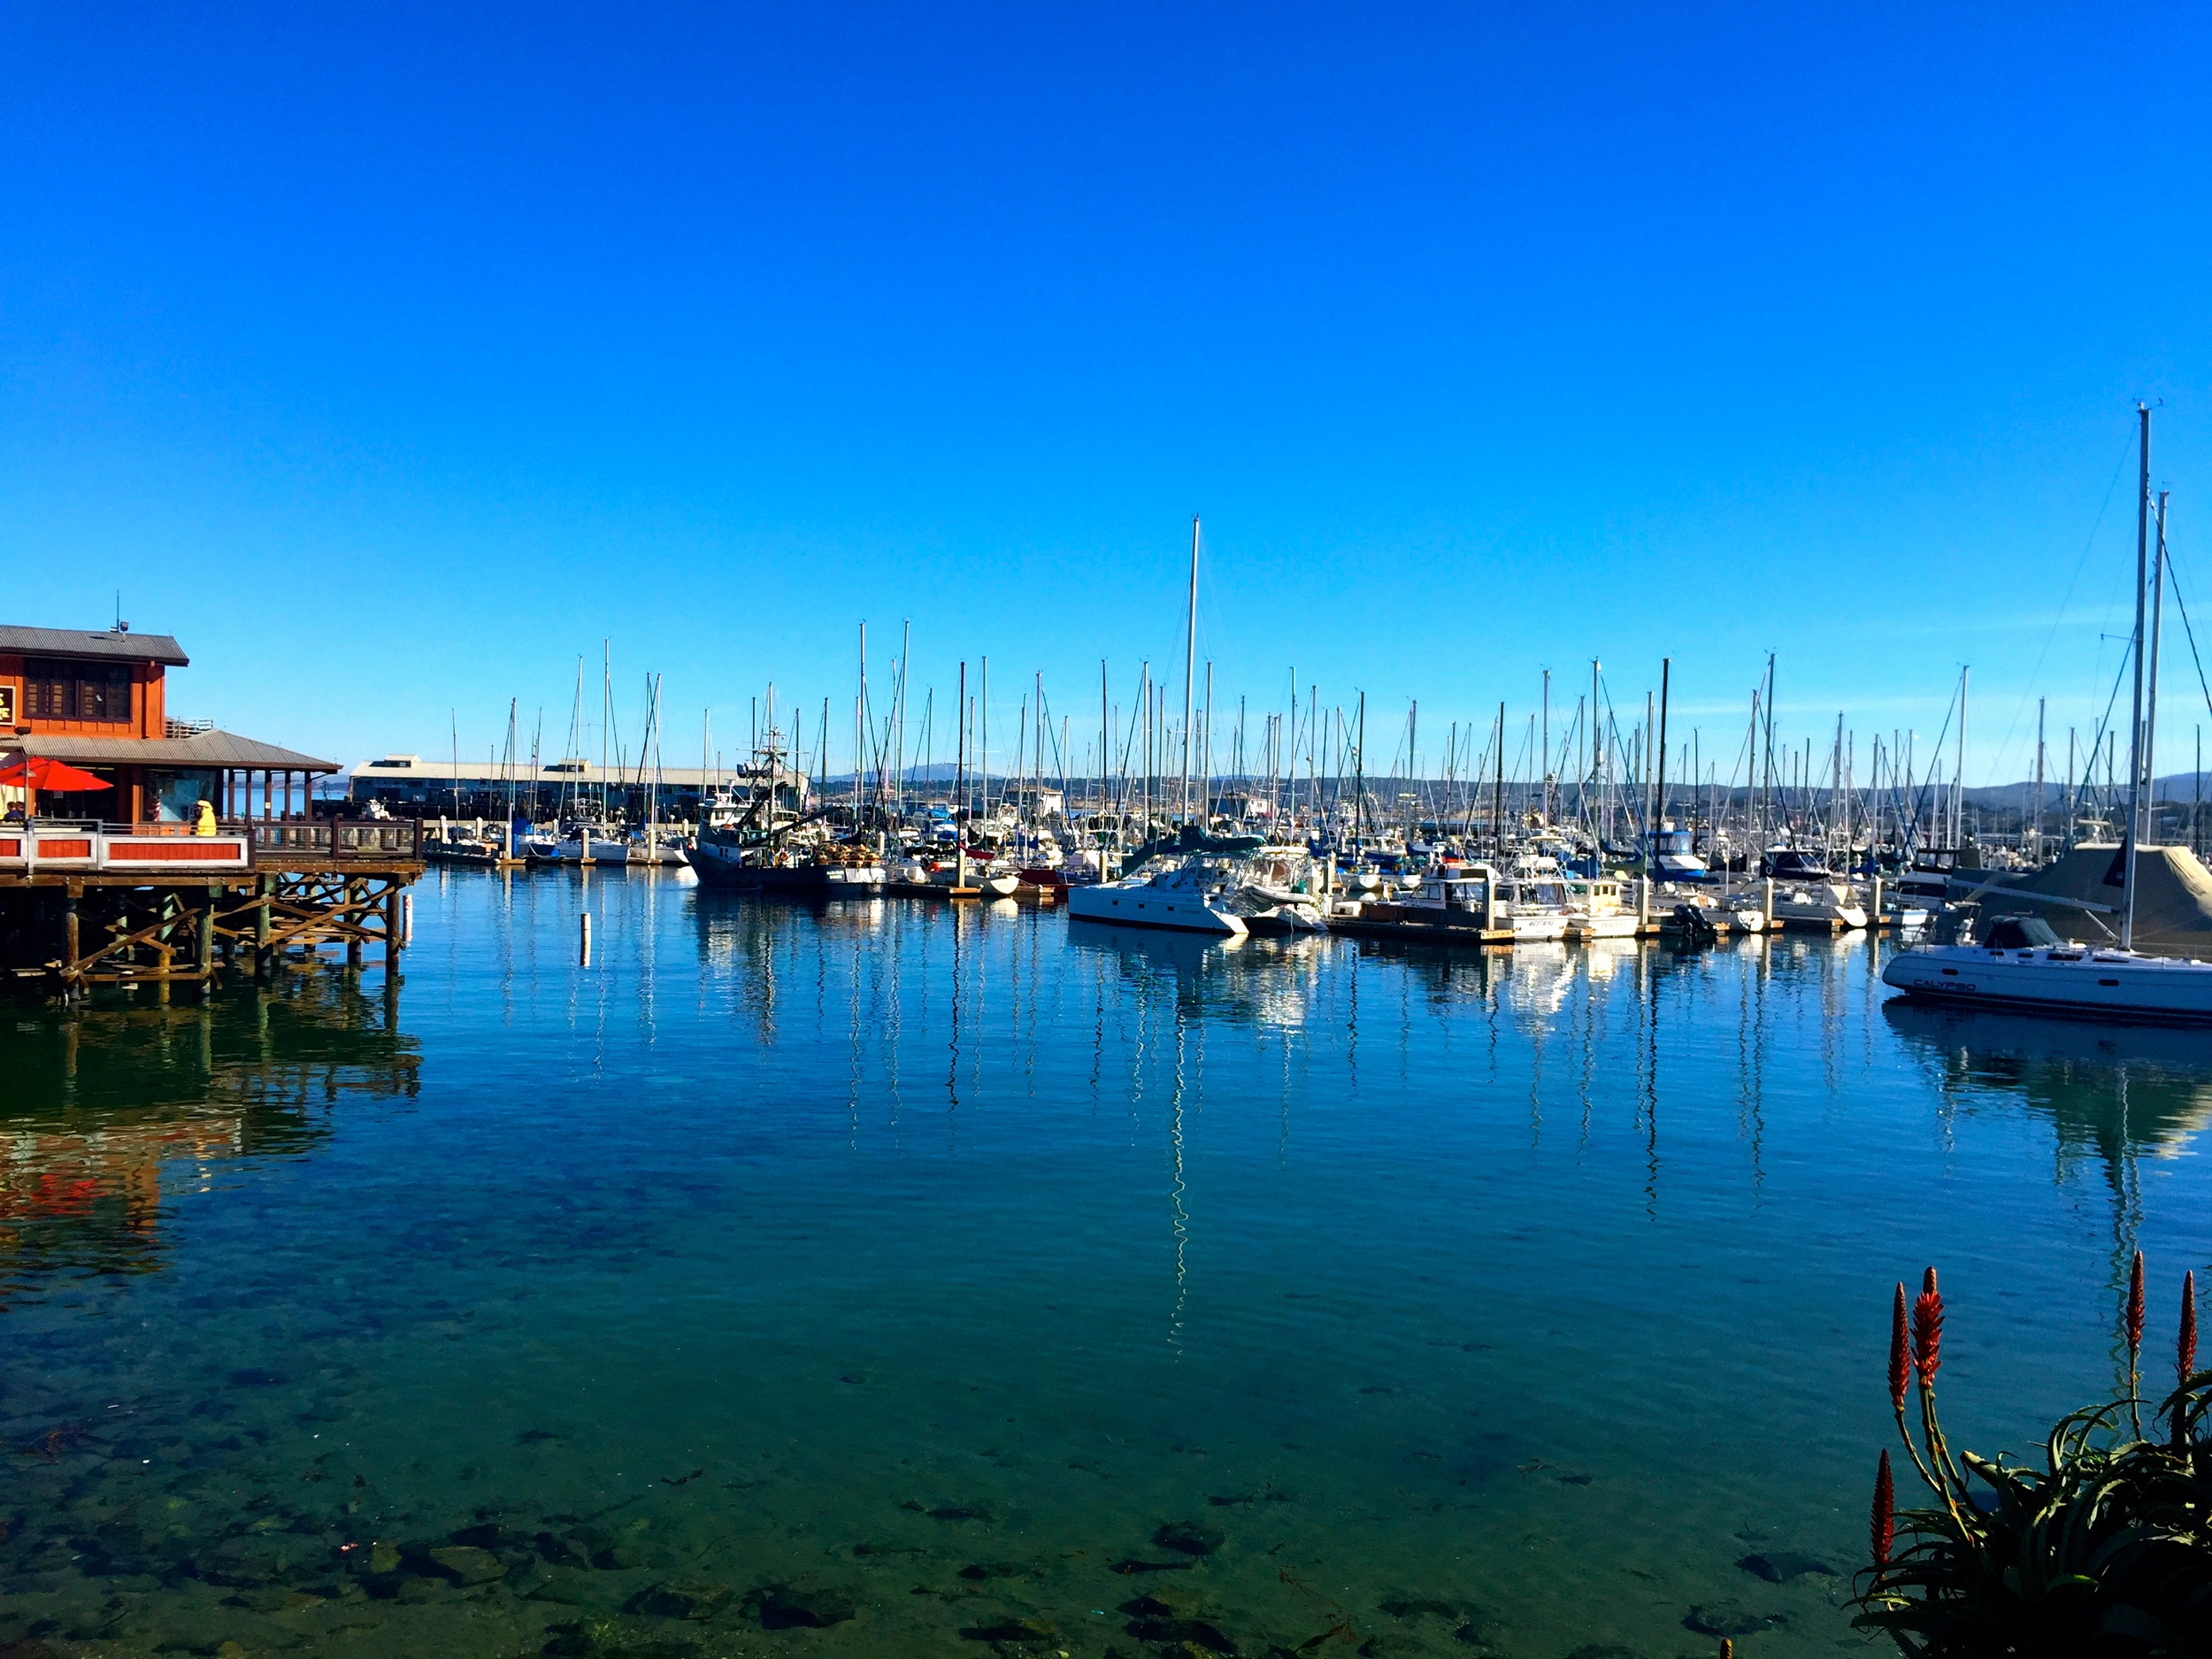 The view from Fisherman's Wharf, Monterey